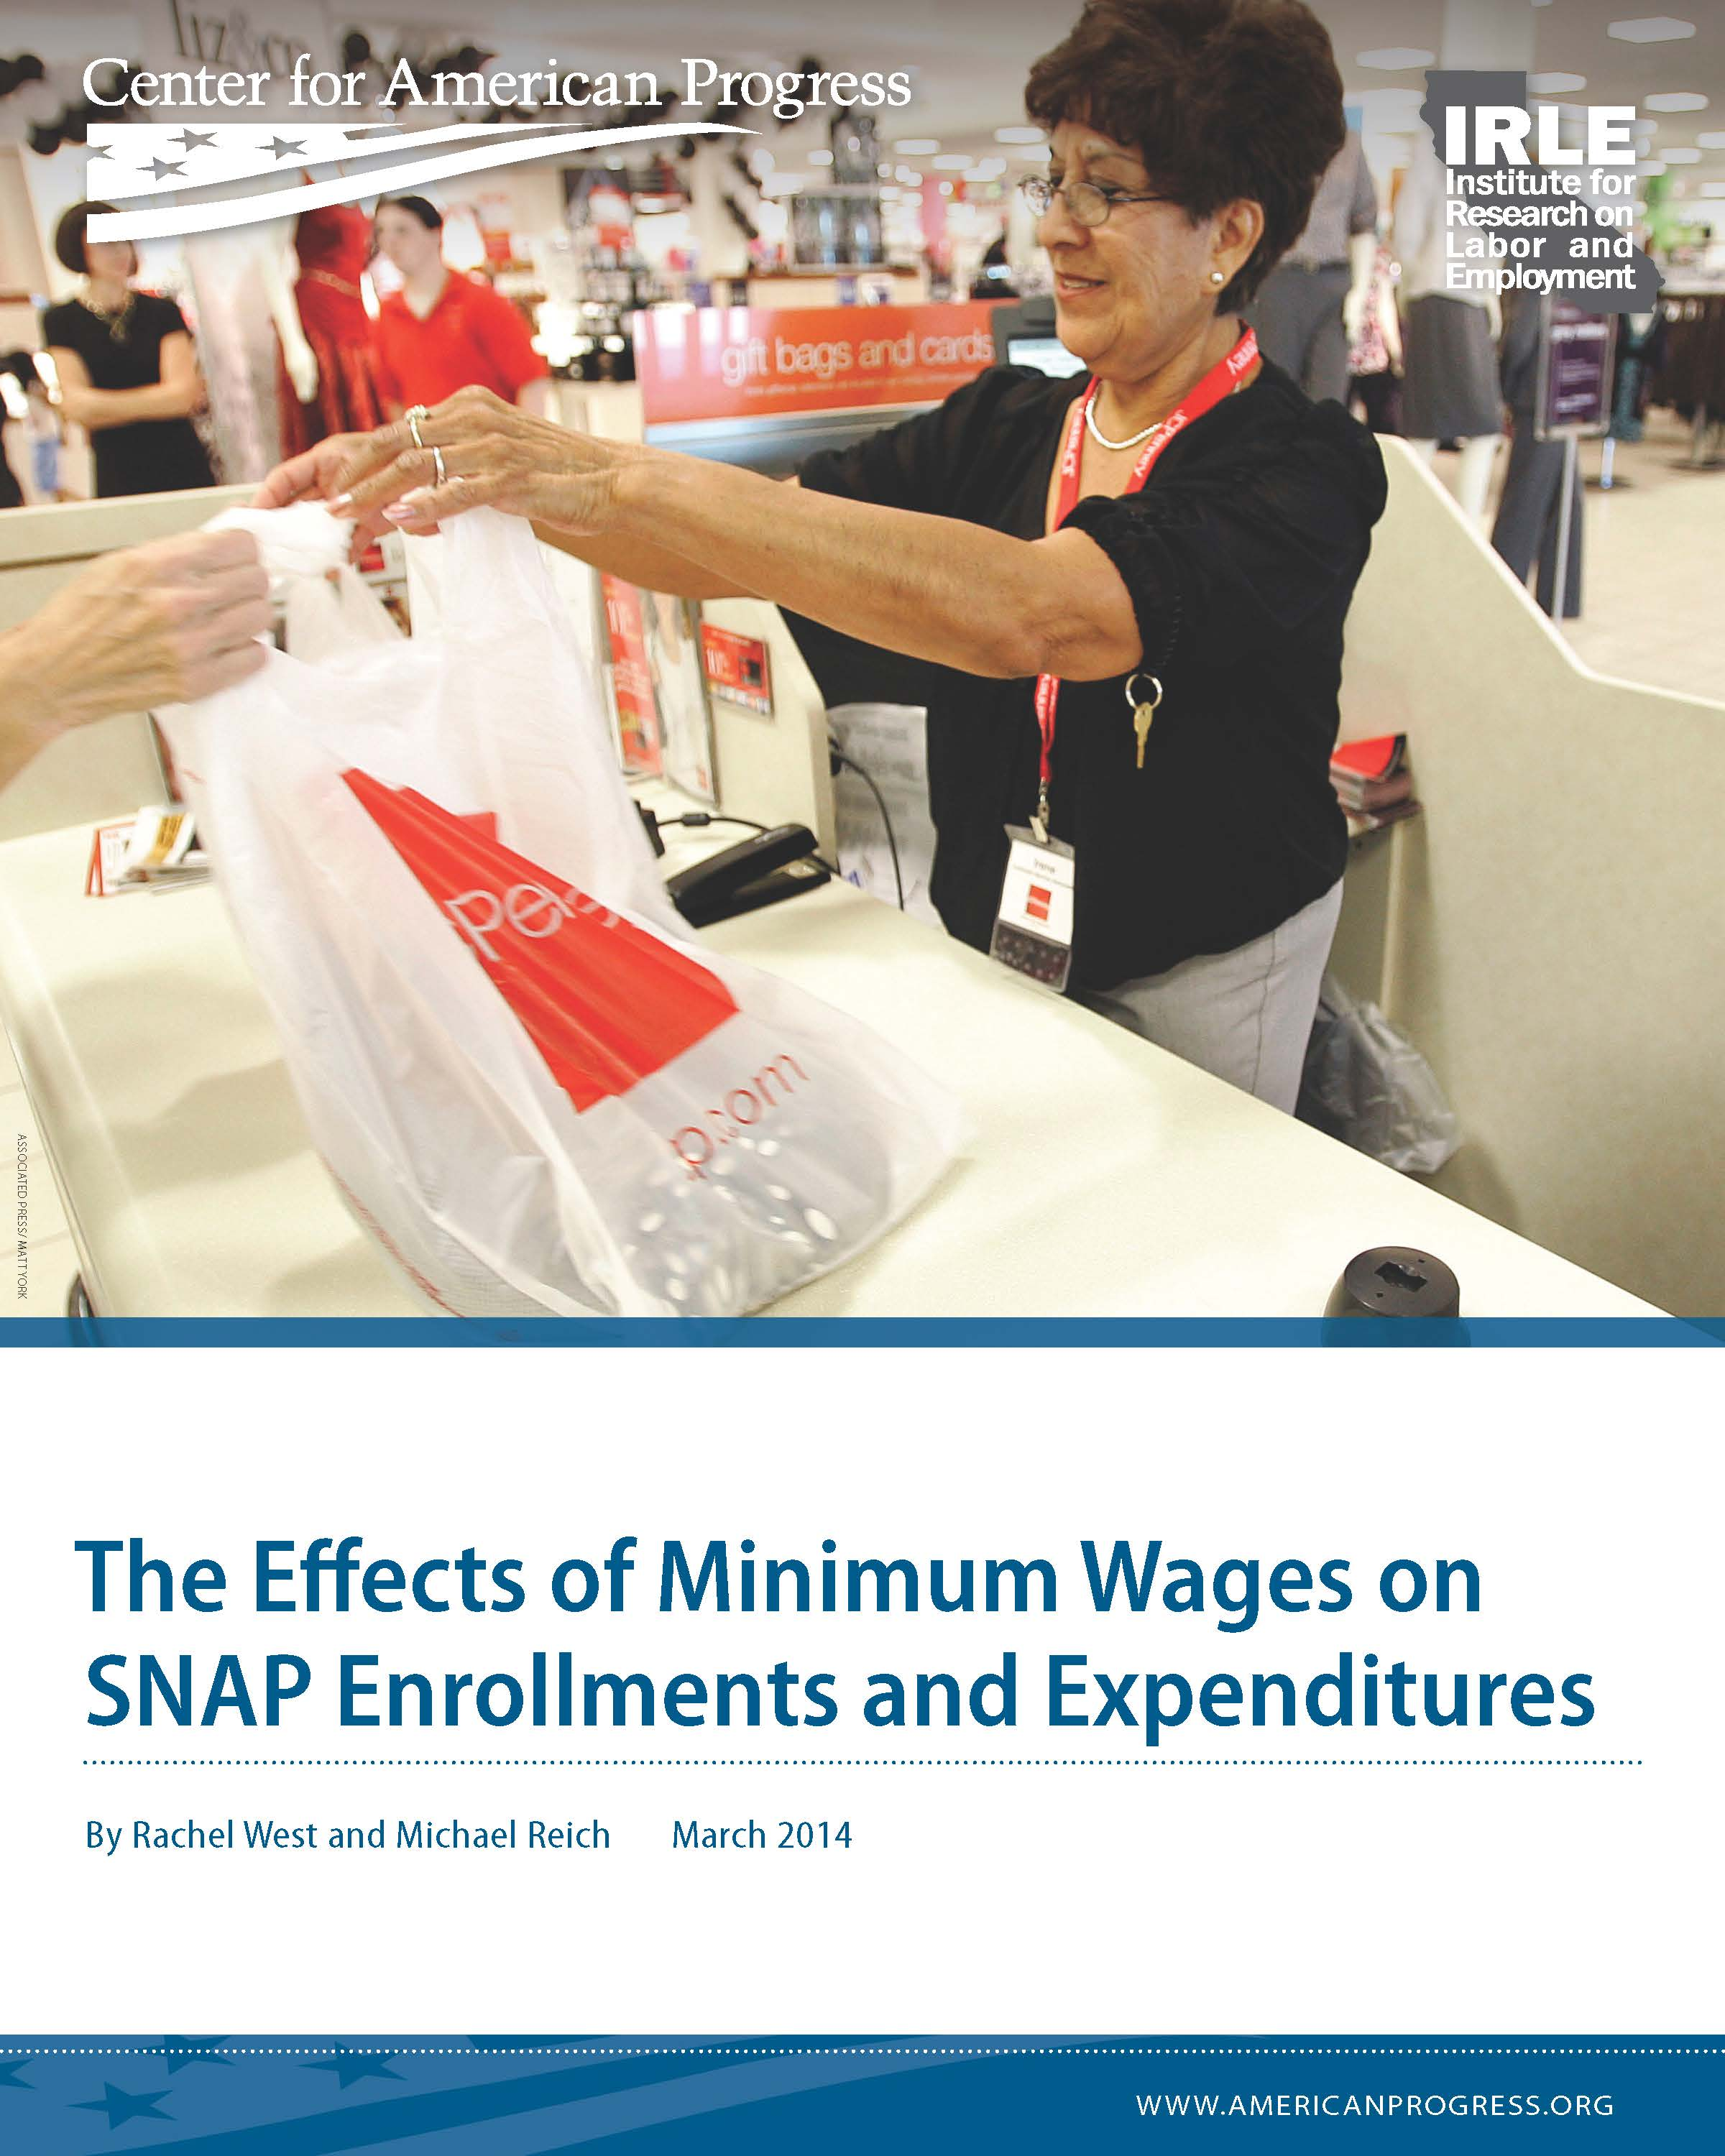 The Effects of Minimum Wages on SNAP Enrollments and Expenditures